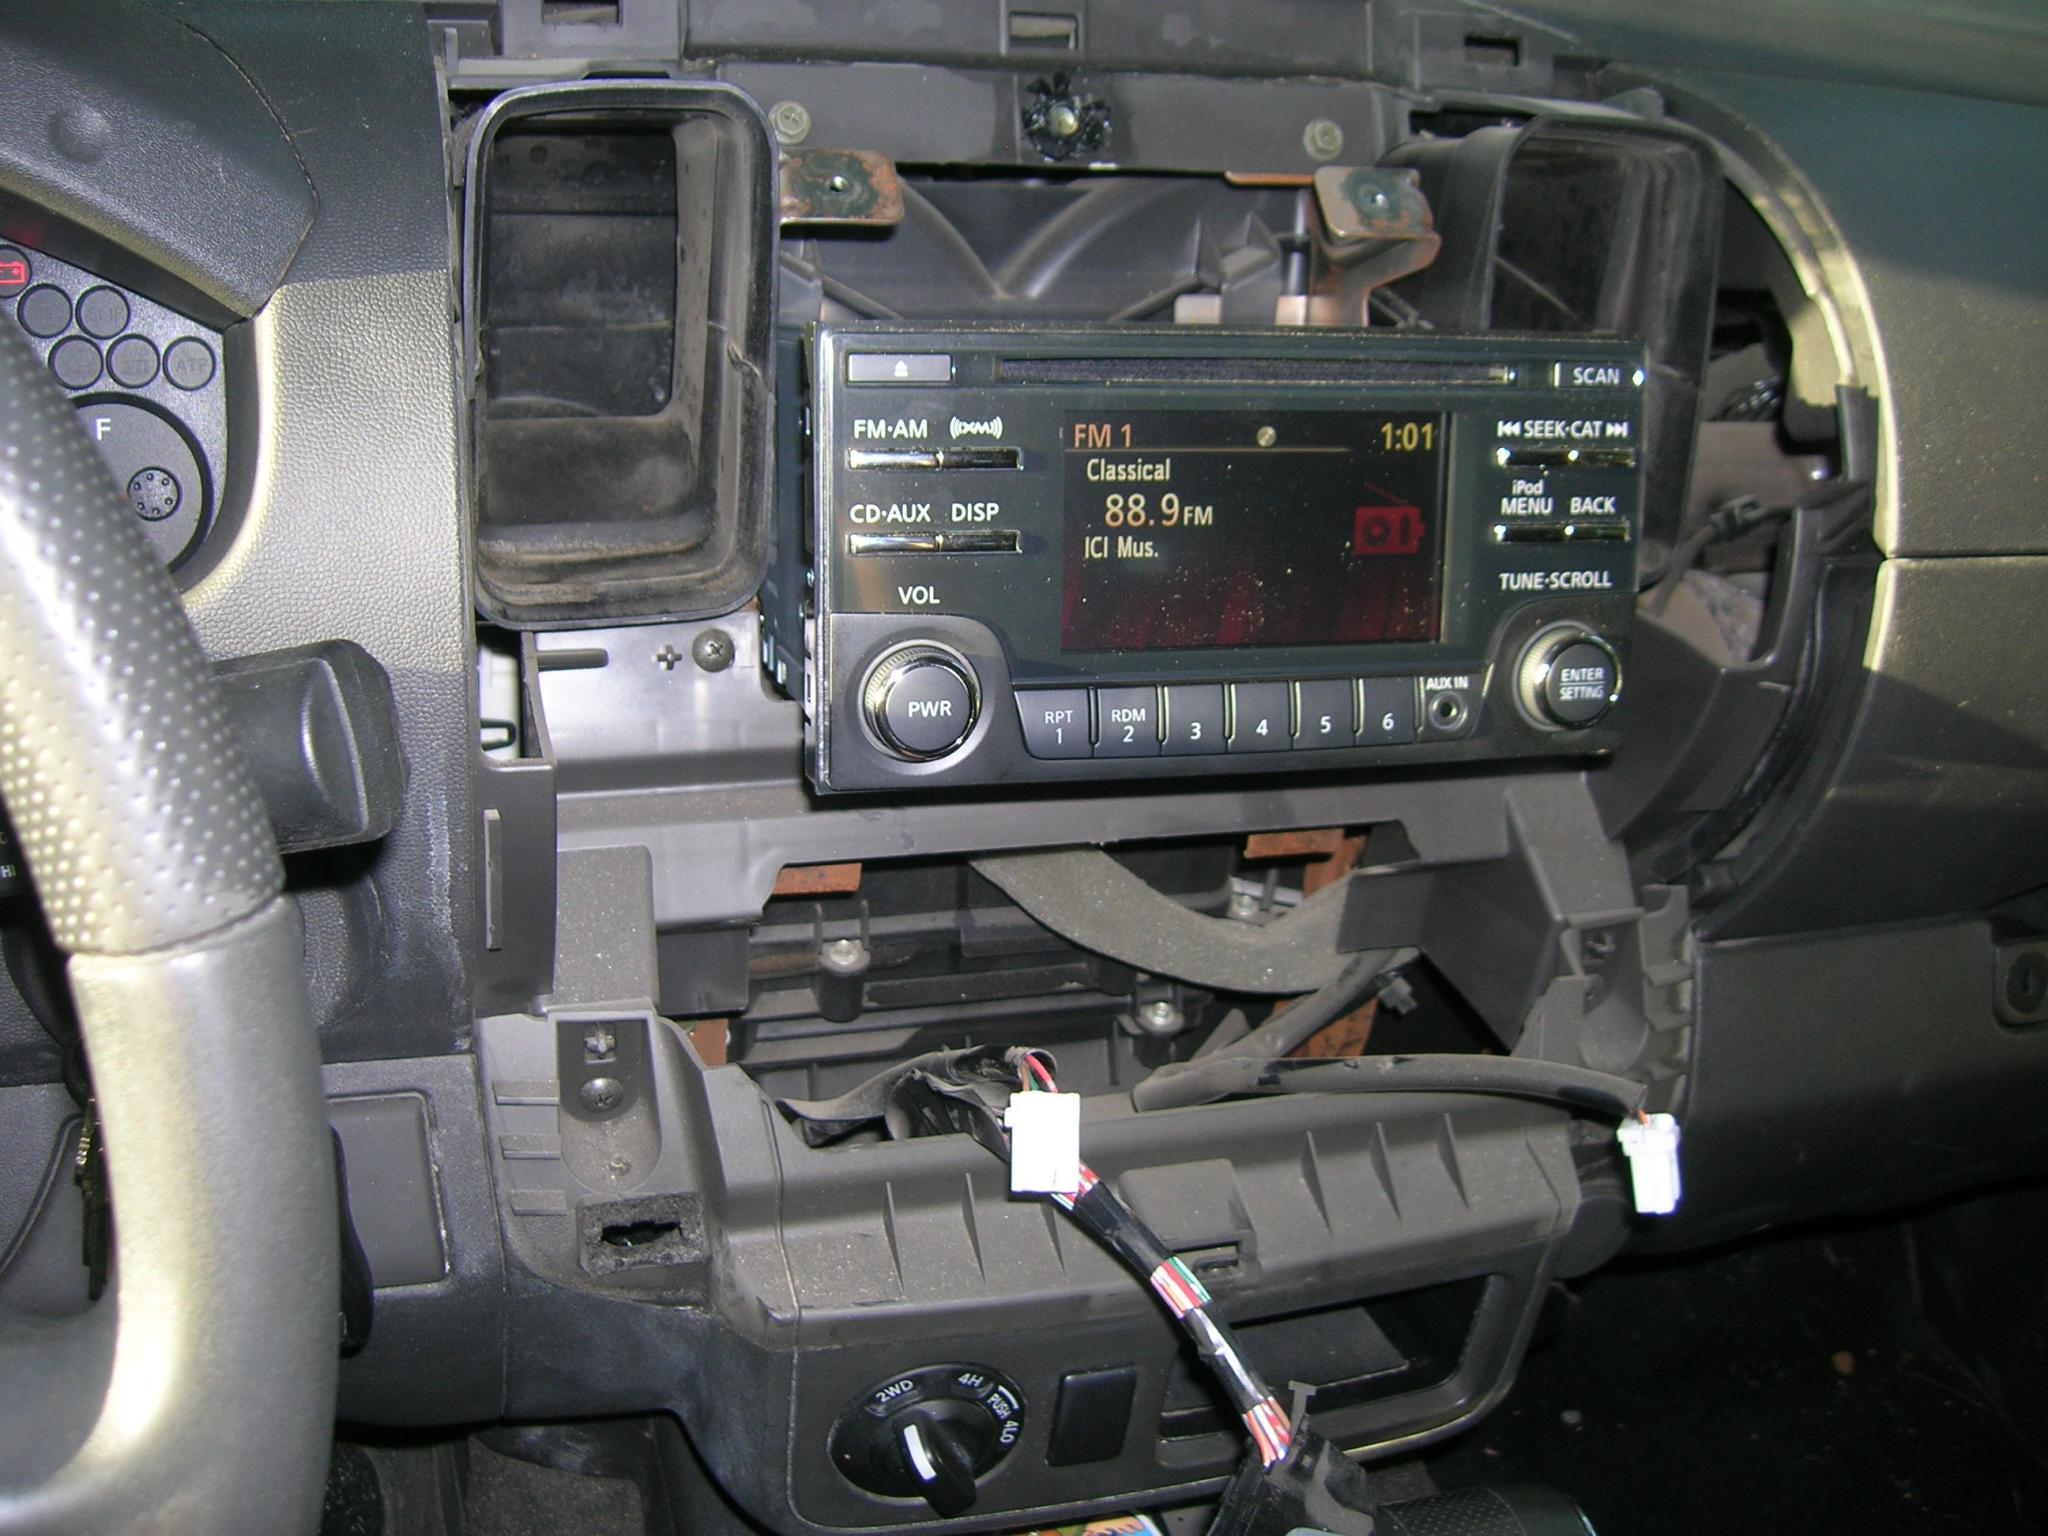 99458d1409276527 possible swap 2013 nissan frontier sv head unit into base model suzuki equator dscn0730 possible to swap 2013 nissan frontier sv head unit into base model 2013 nissan frontier hard bed cover ebay at bakdesigns.co